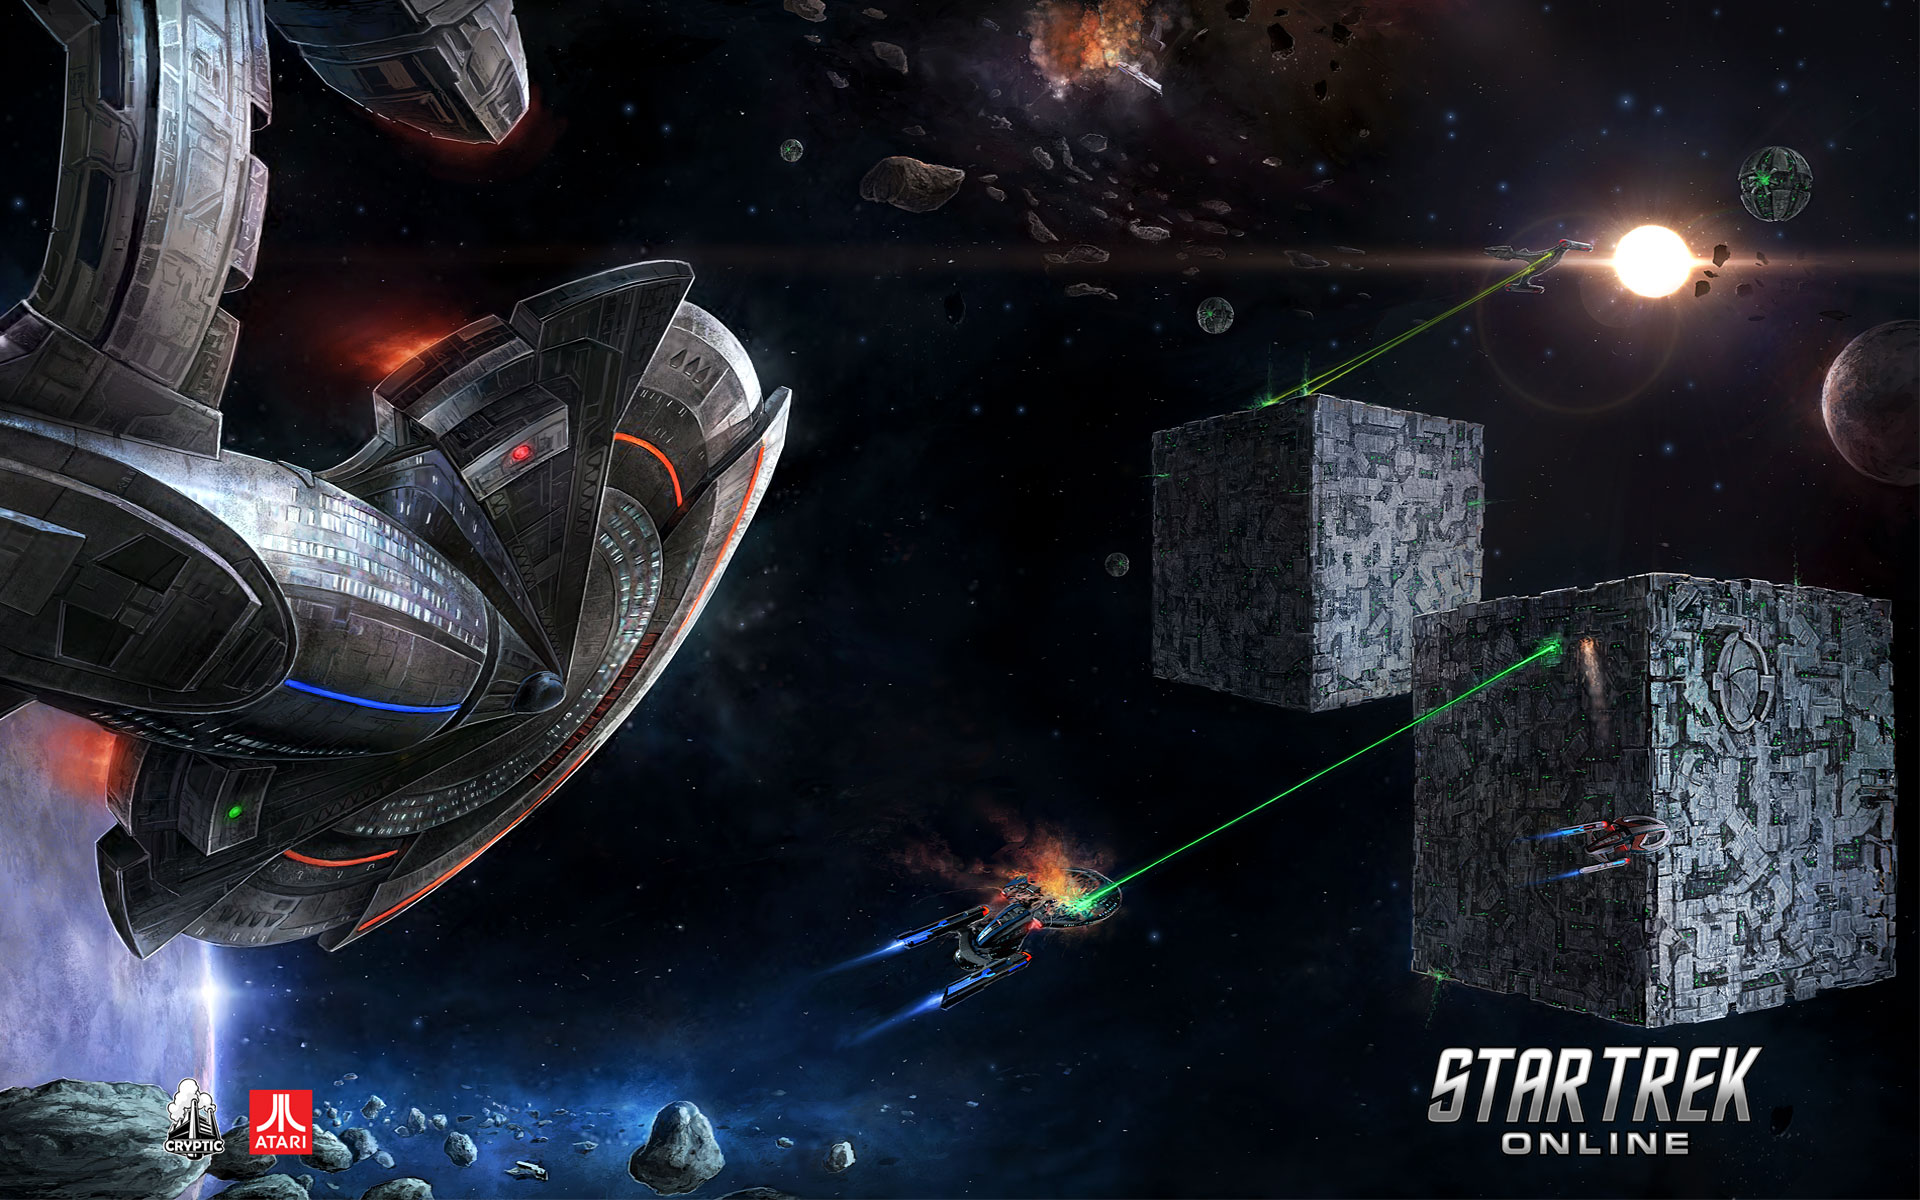 Star Trek Online Desktop Wallpapers for HD 1920x1200